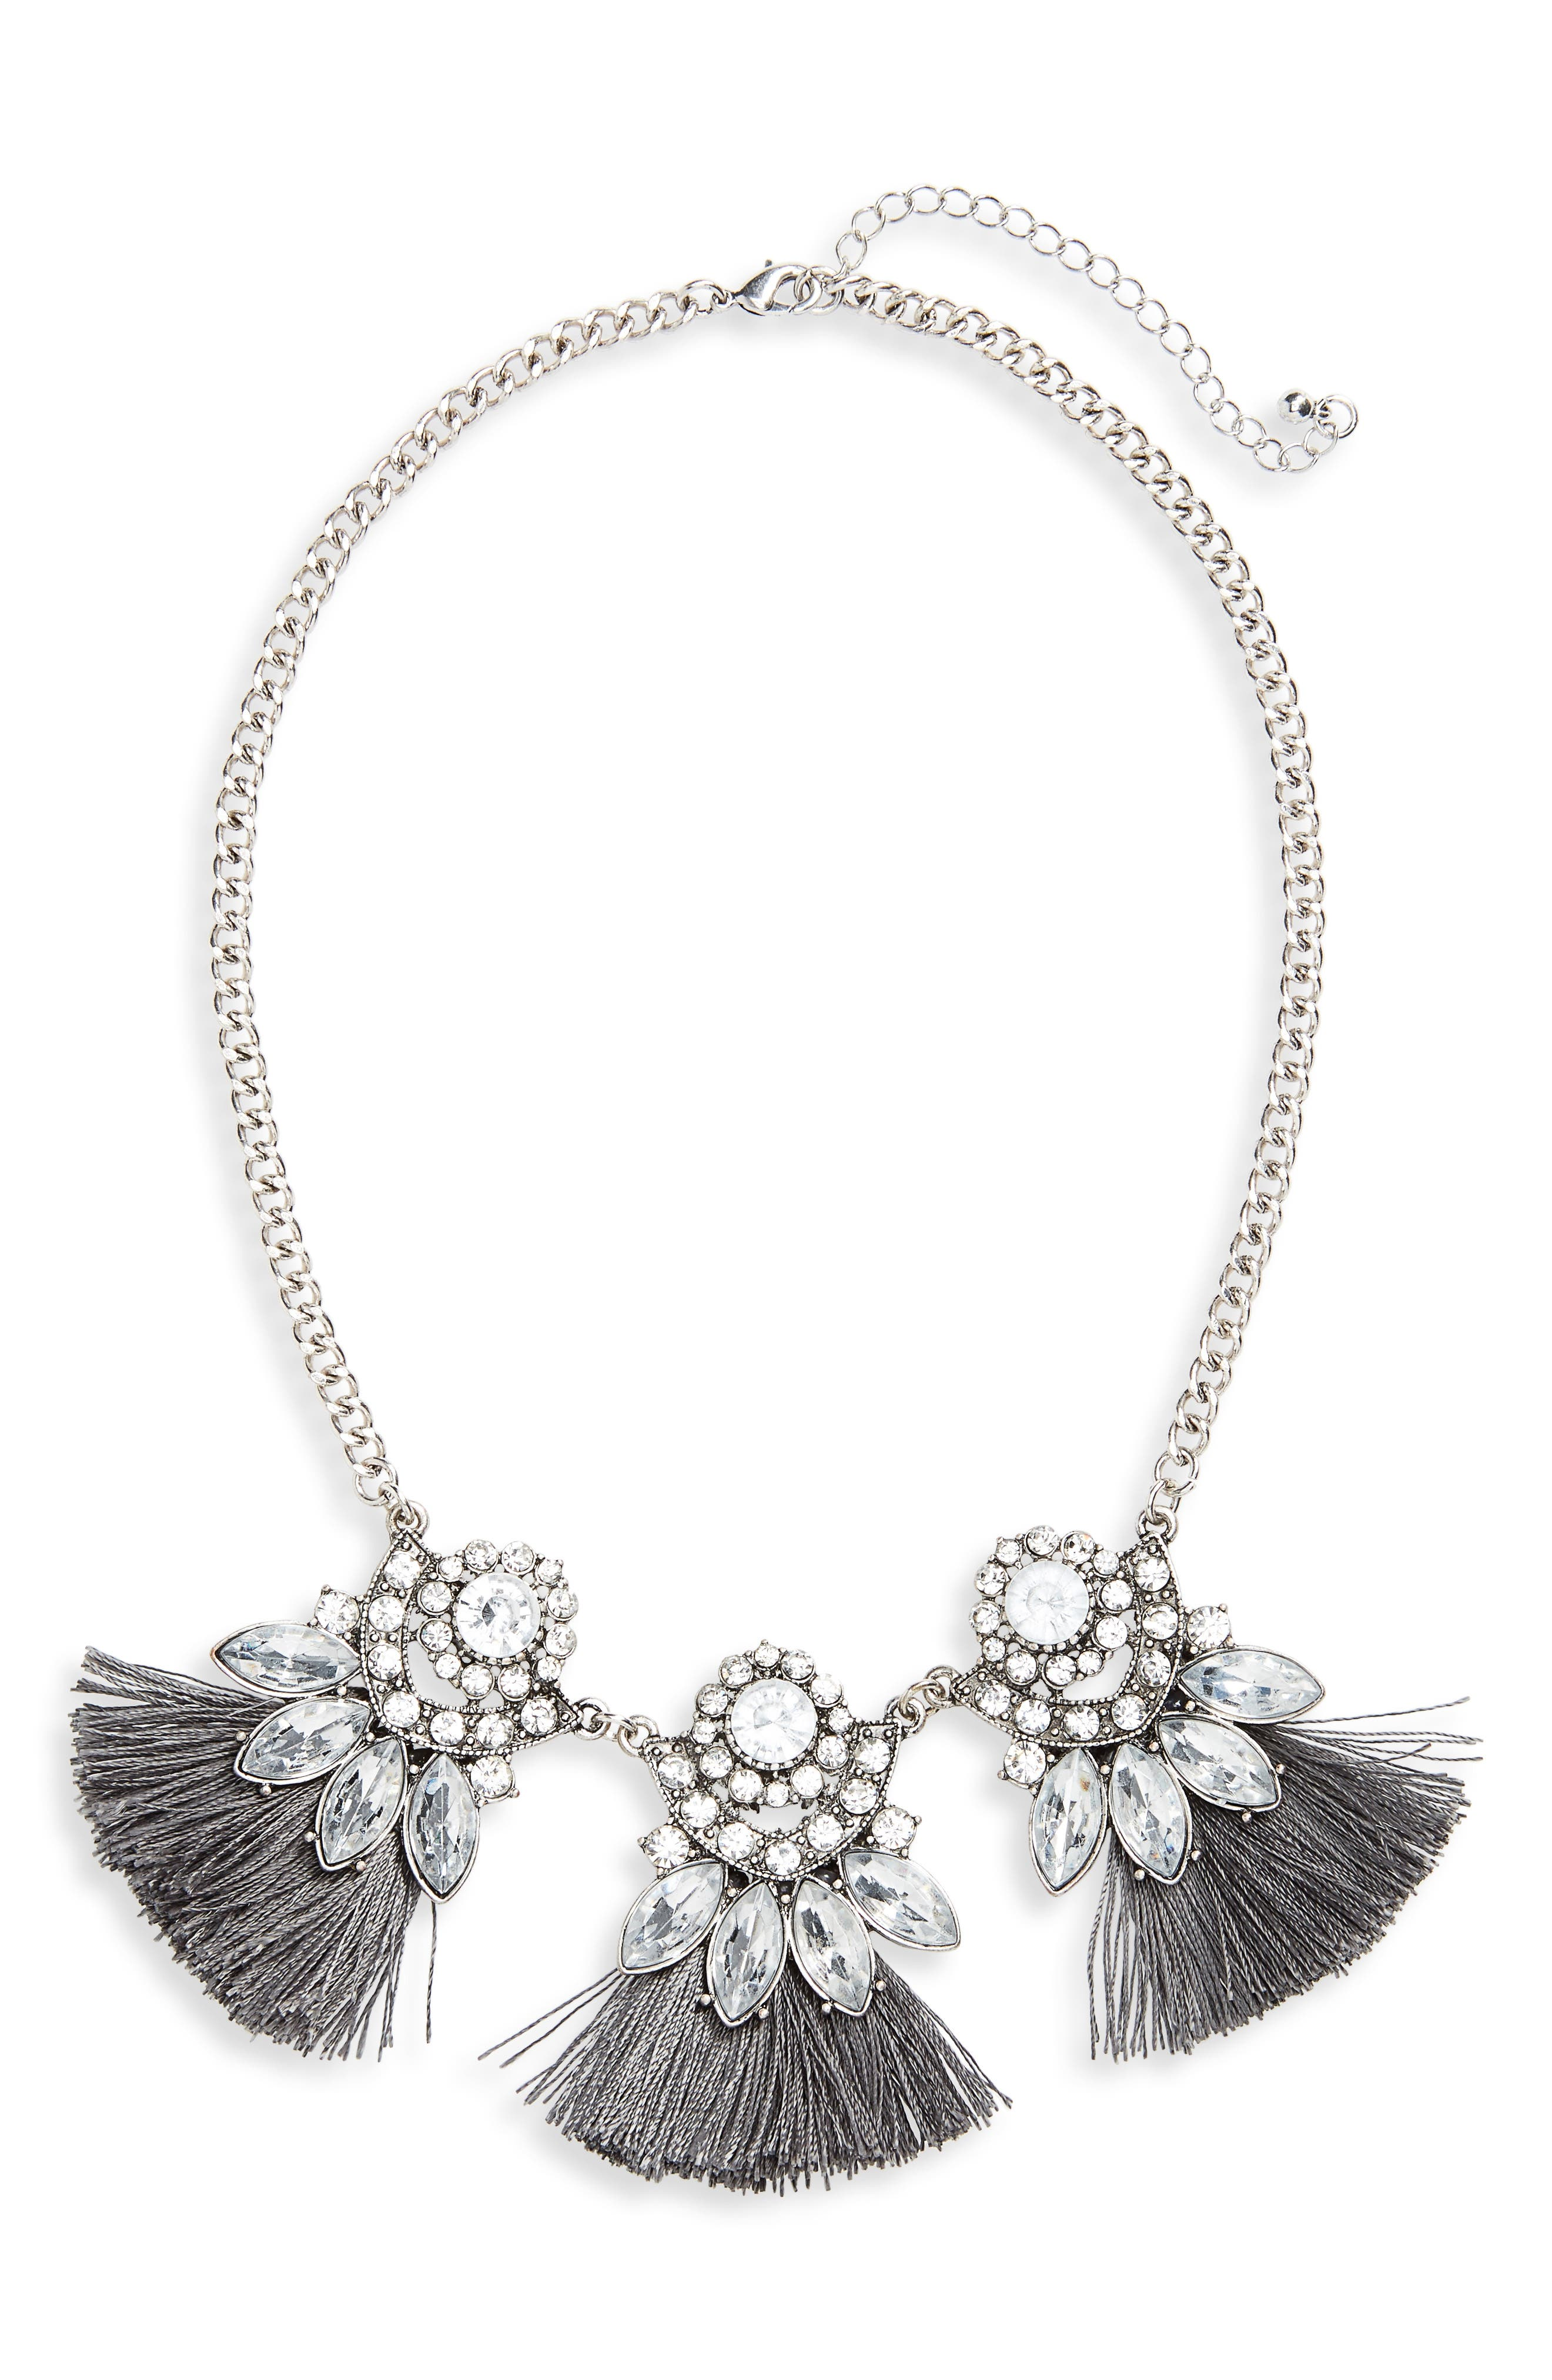 Crystal Tassel Statement Necklace,                             Main thumbnail 1, color,                             Silver/ Gray/ Crystal